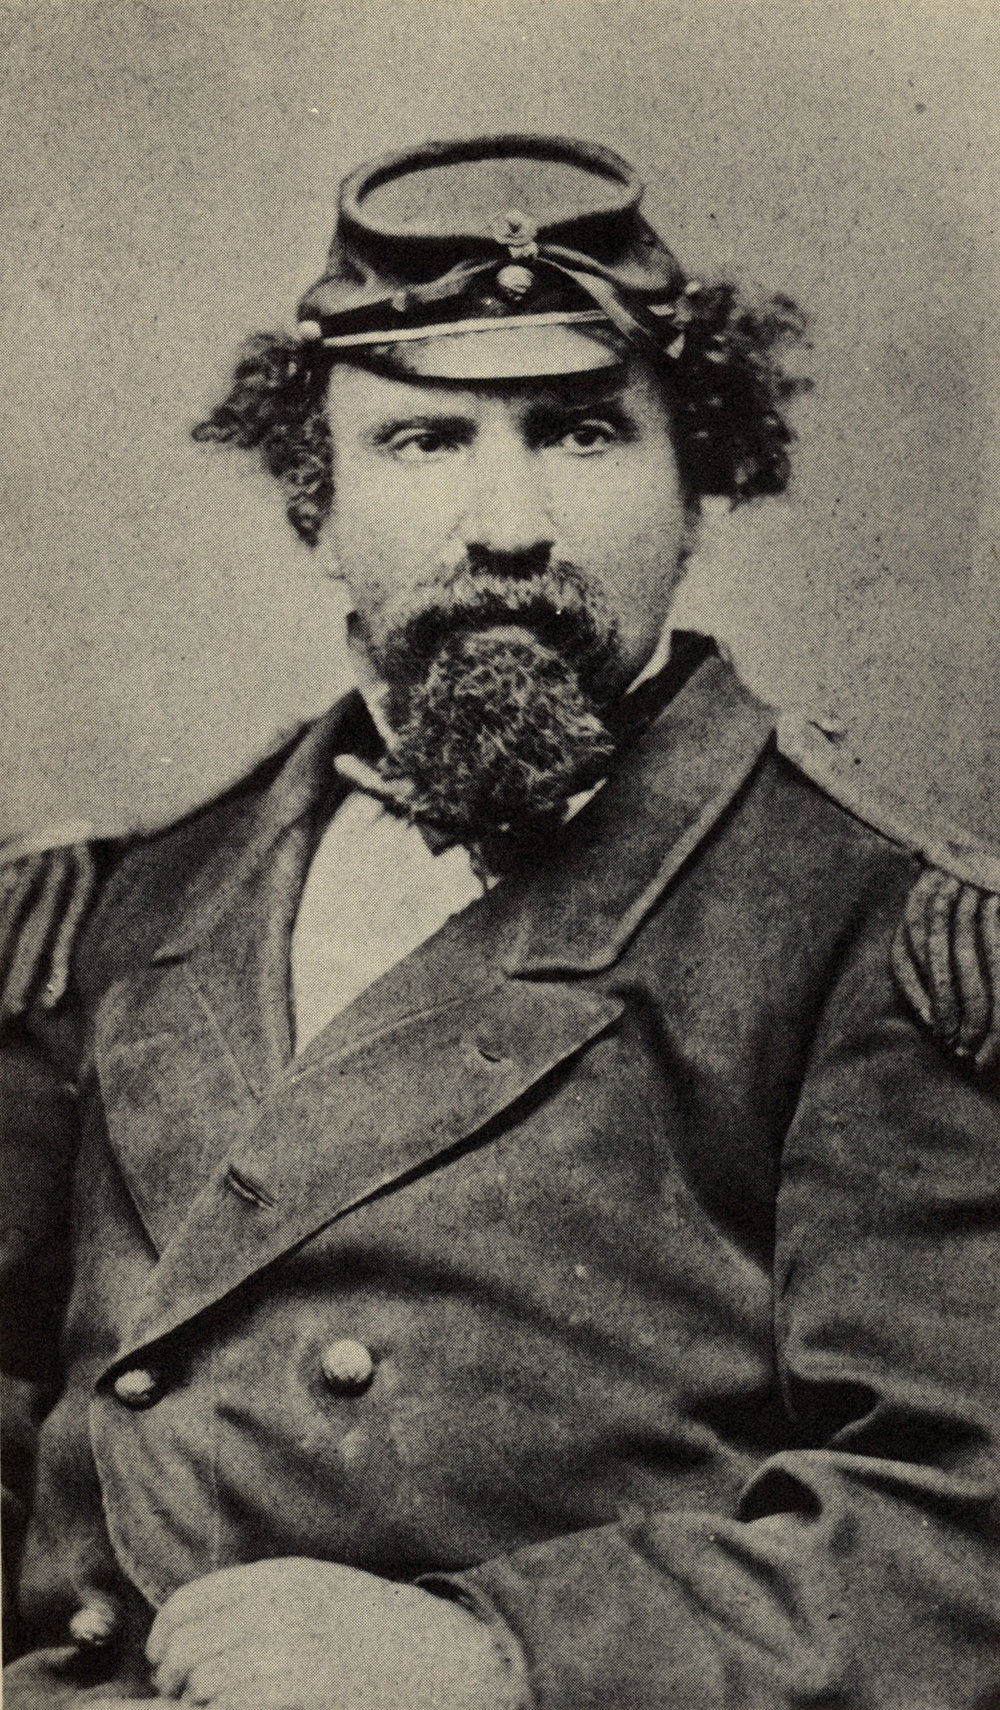 Emperor Norton, c.1871–72. Photograph by Tuttle & Johnson, Heliographic Artists, 523 Kearny Street, San Francisco.